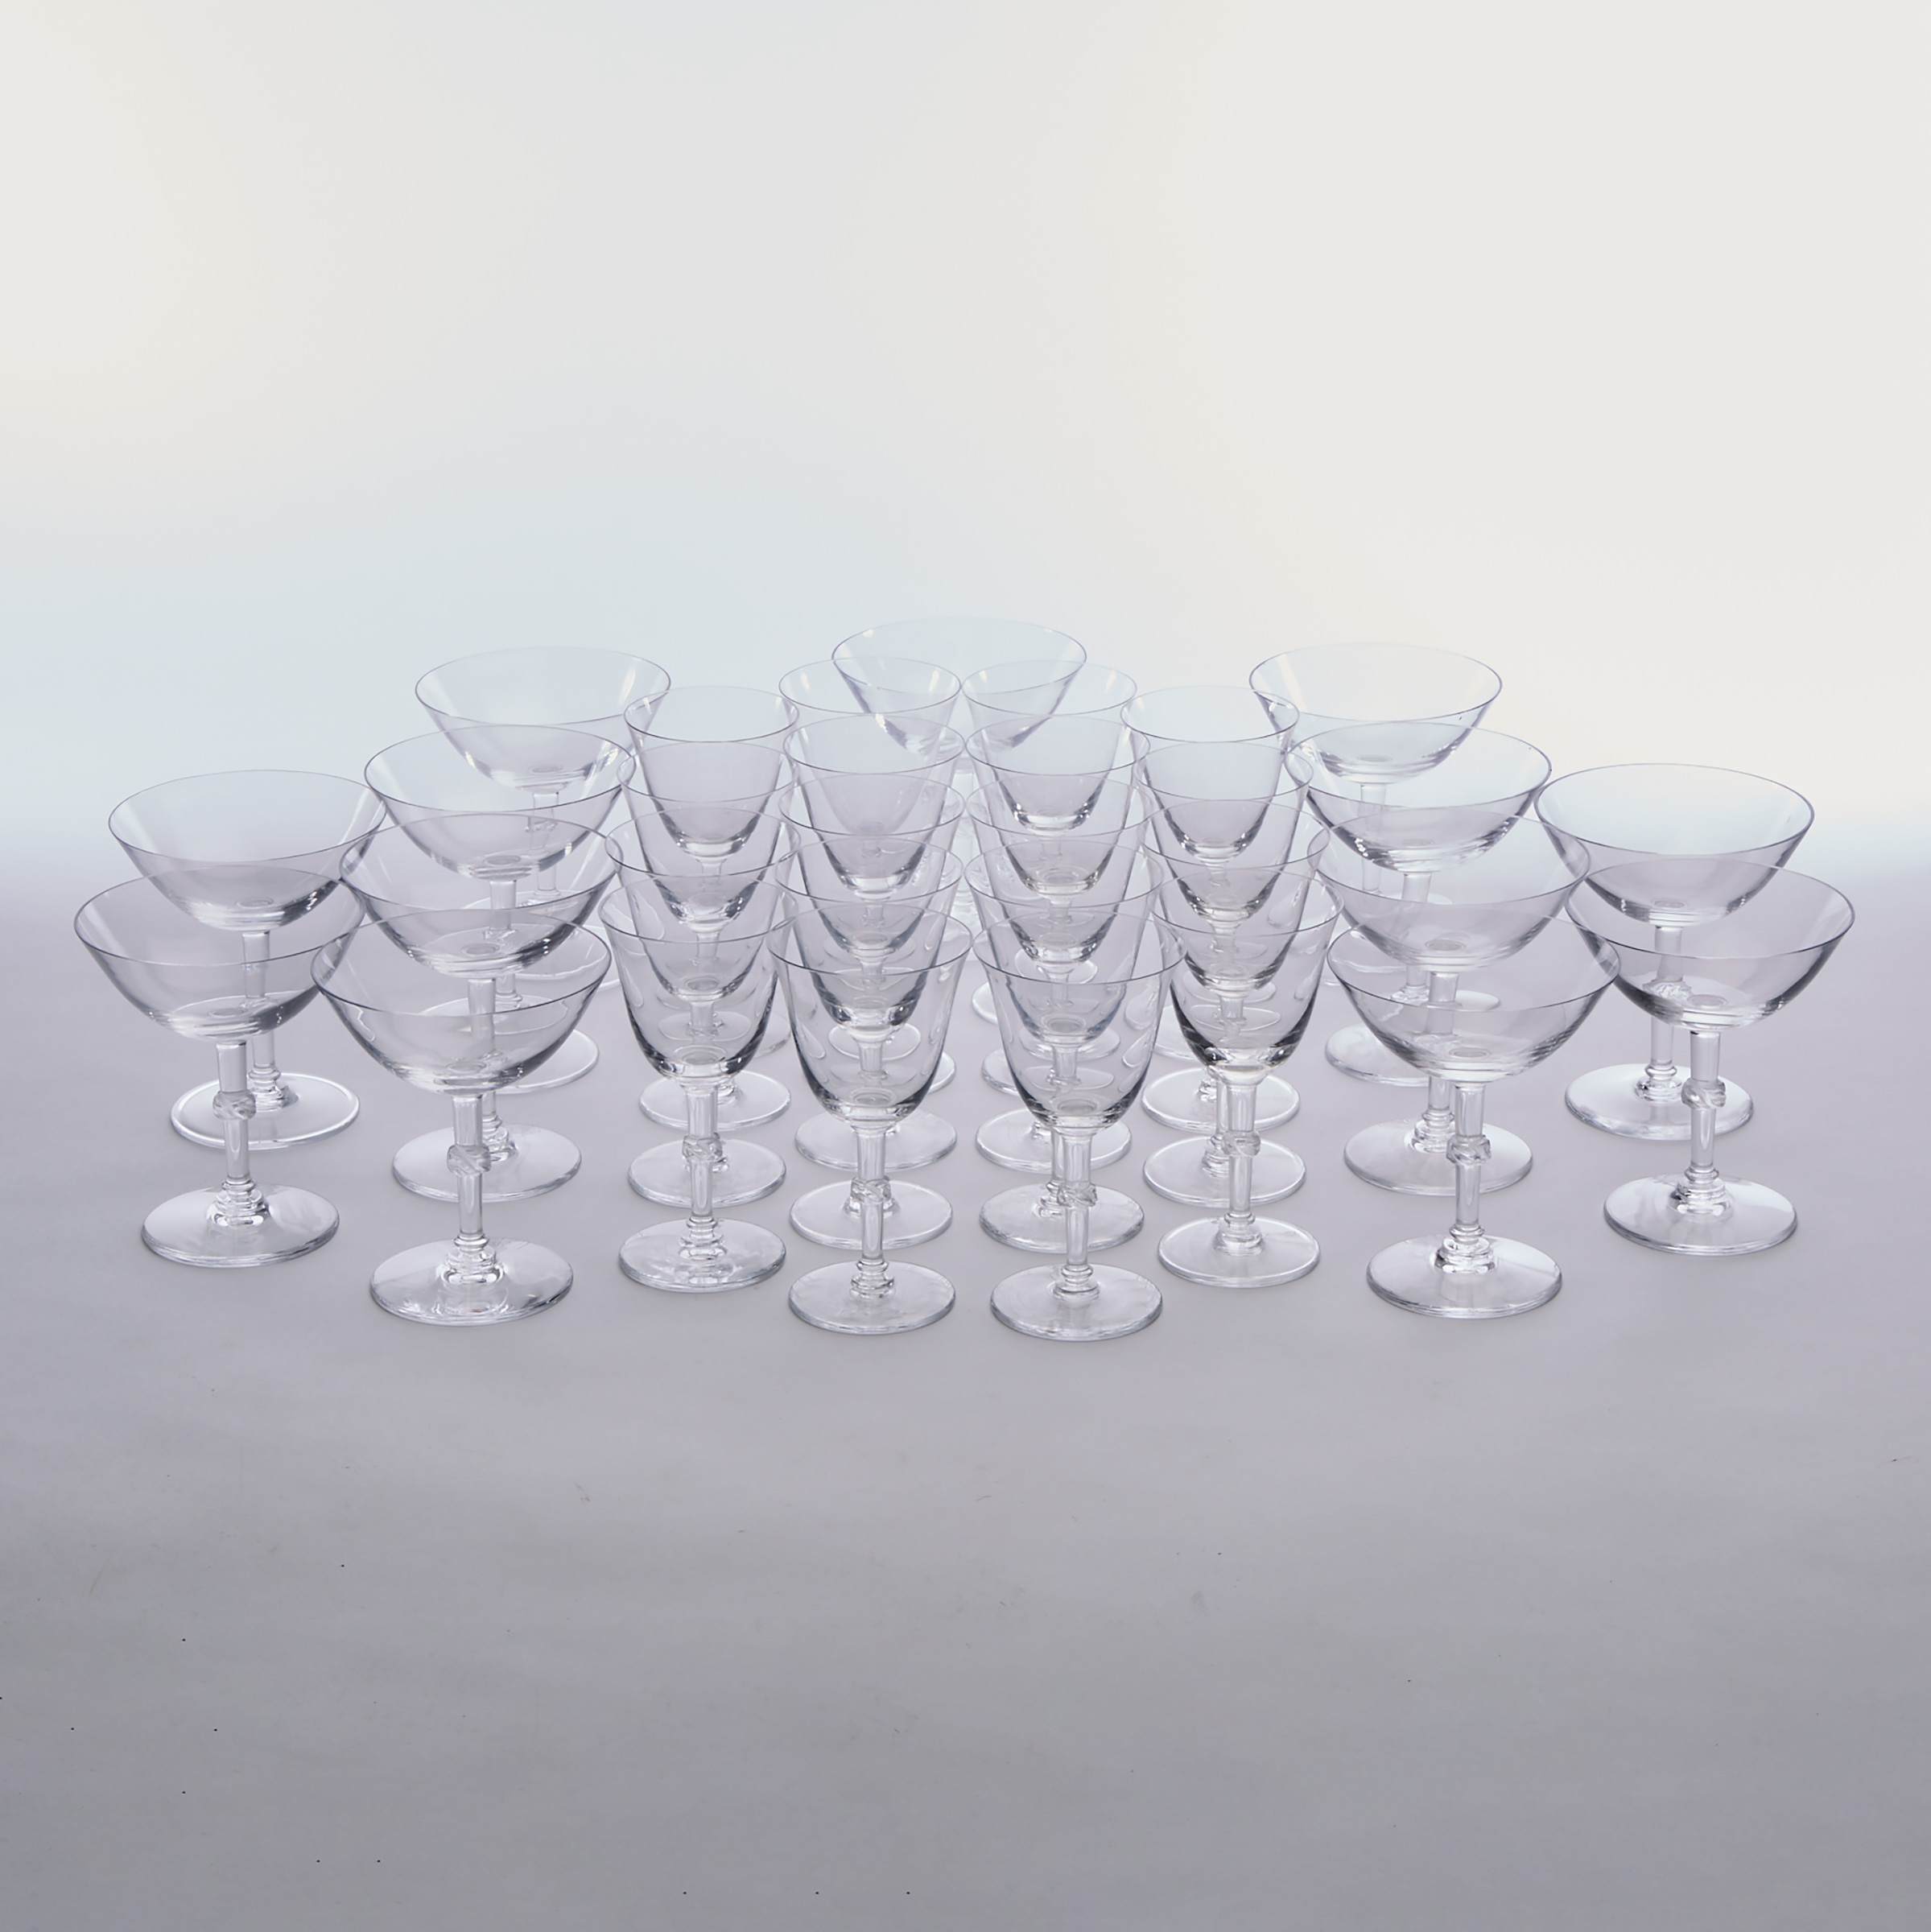 Beaugency, Lalique Glass Stemware, post-1945